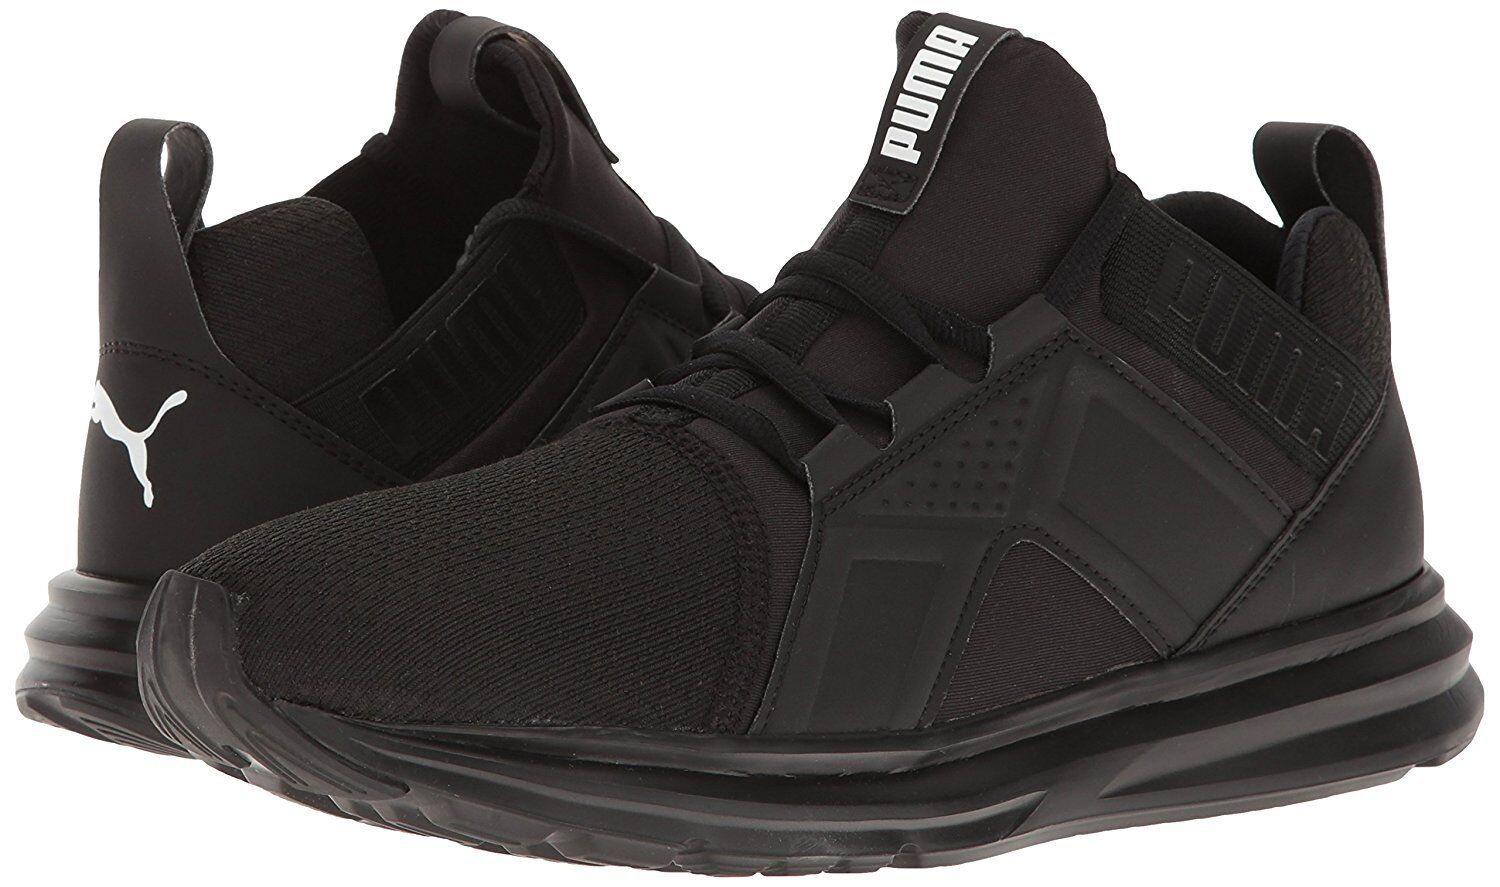 Men's Shoes PUMA Enzo Run Train Knit Sneakers 189498-03 Black *New*